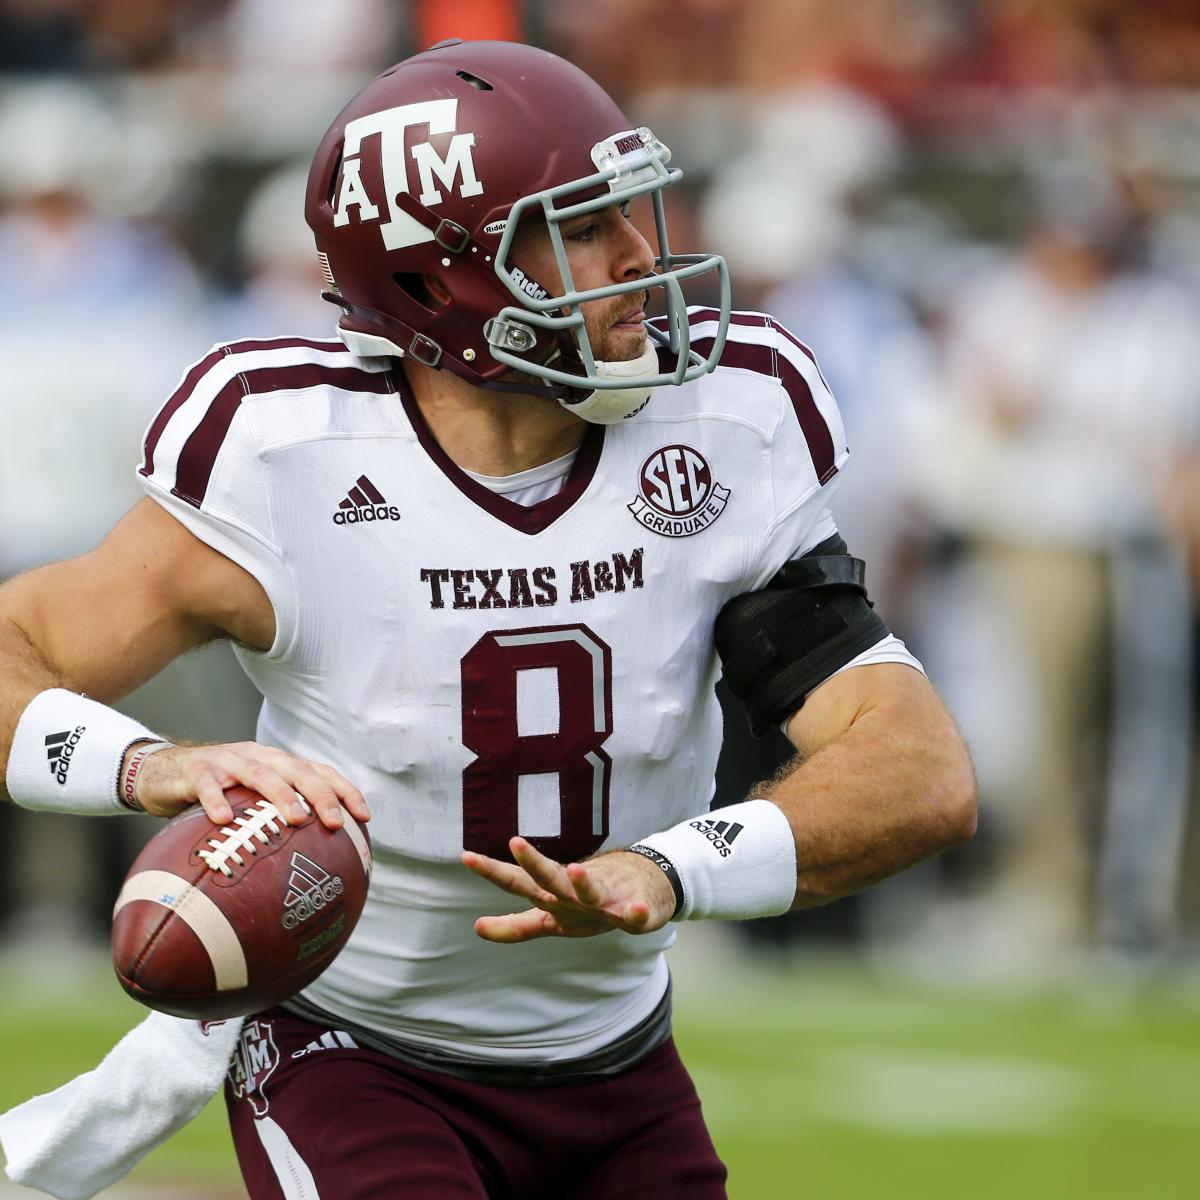 LSU vs. Texas A&M: Live Score, Highlights for Tigers vs ...